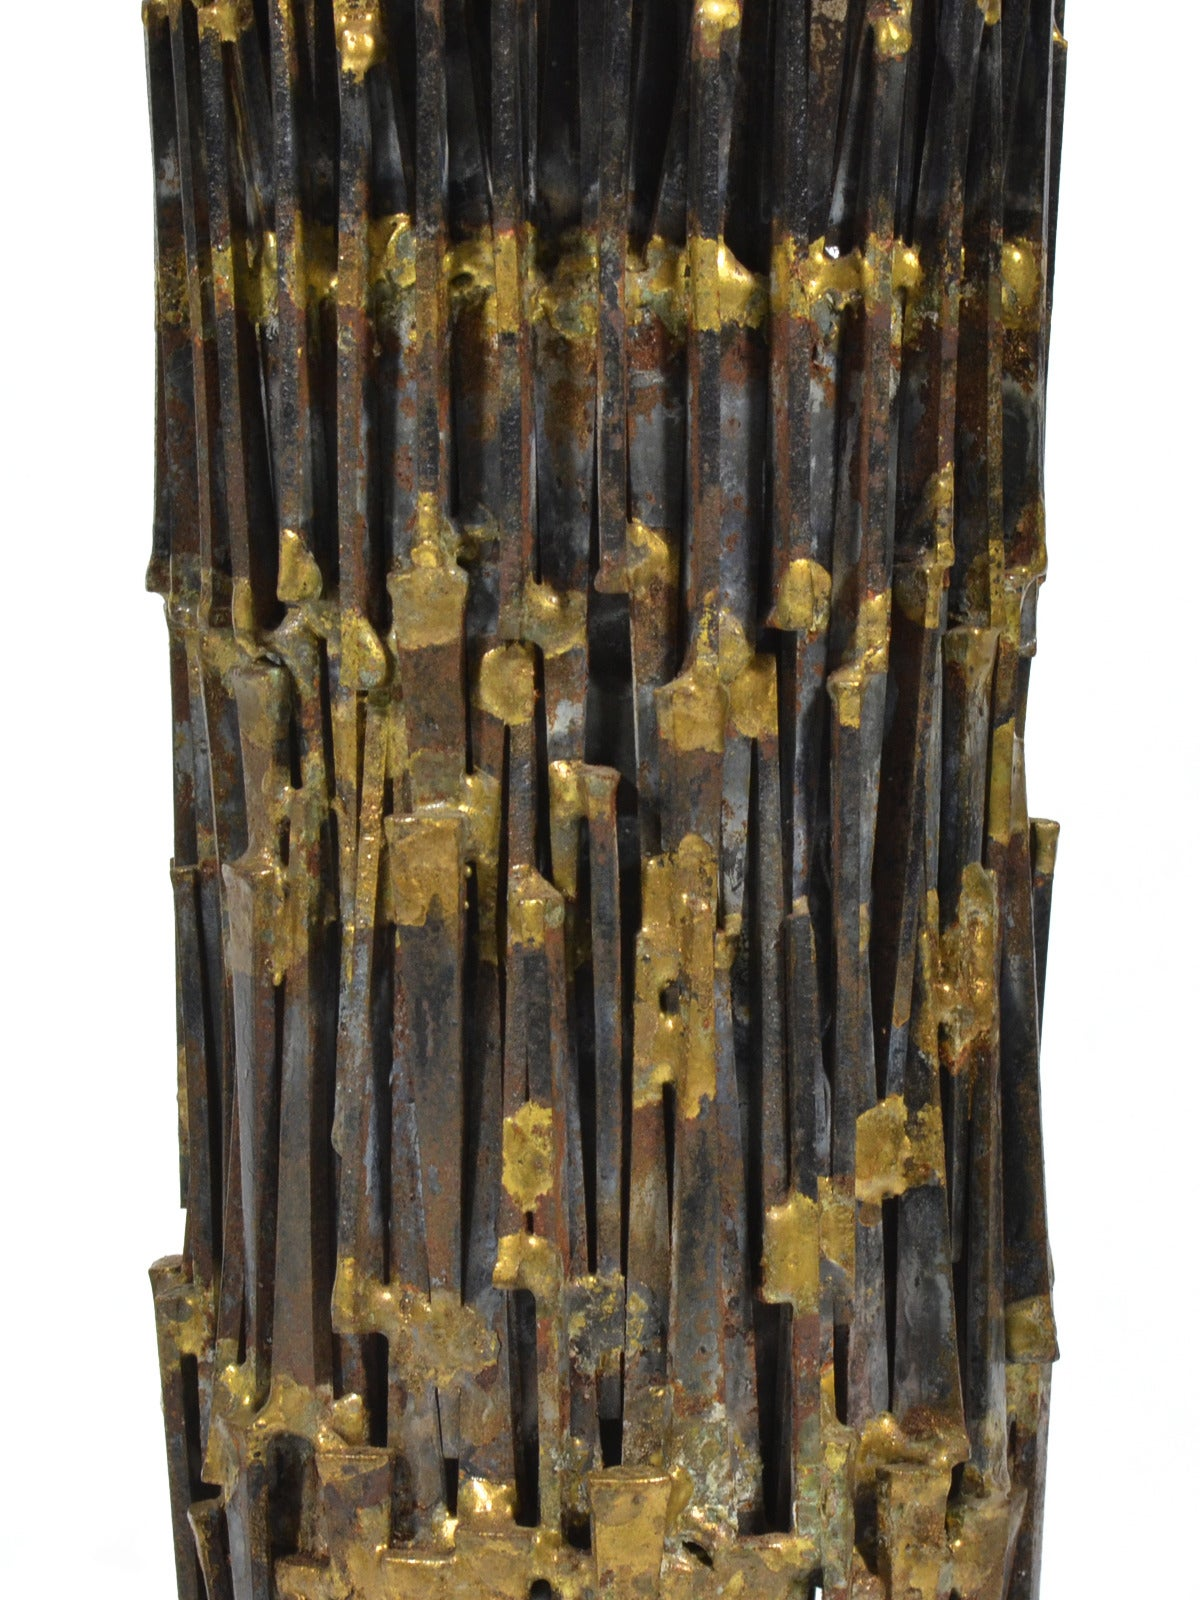 Mid-20th Century Abstract Brutalist Sculpture in Iron and Bronze For Sale